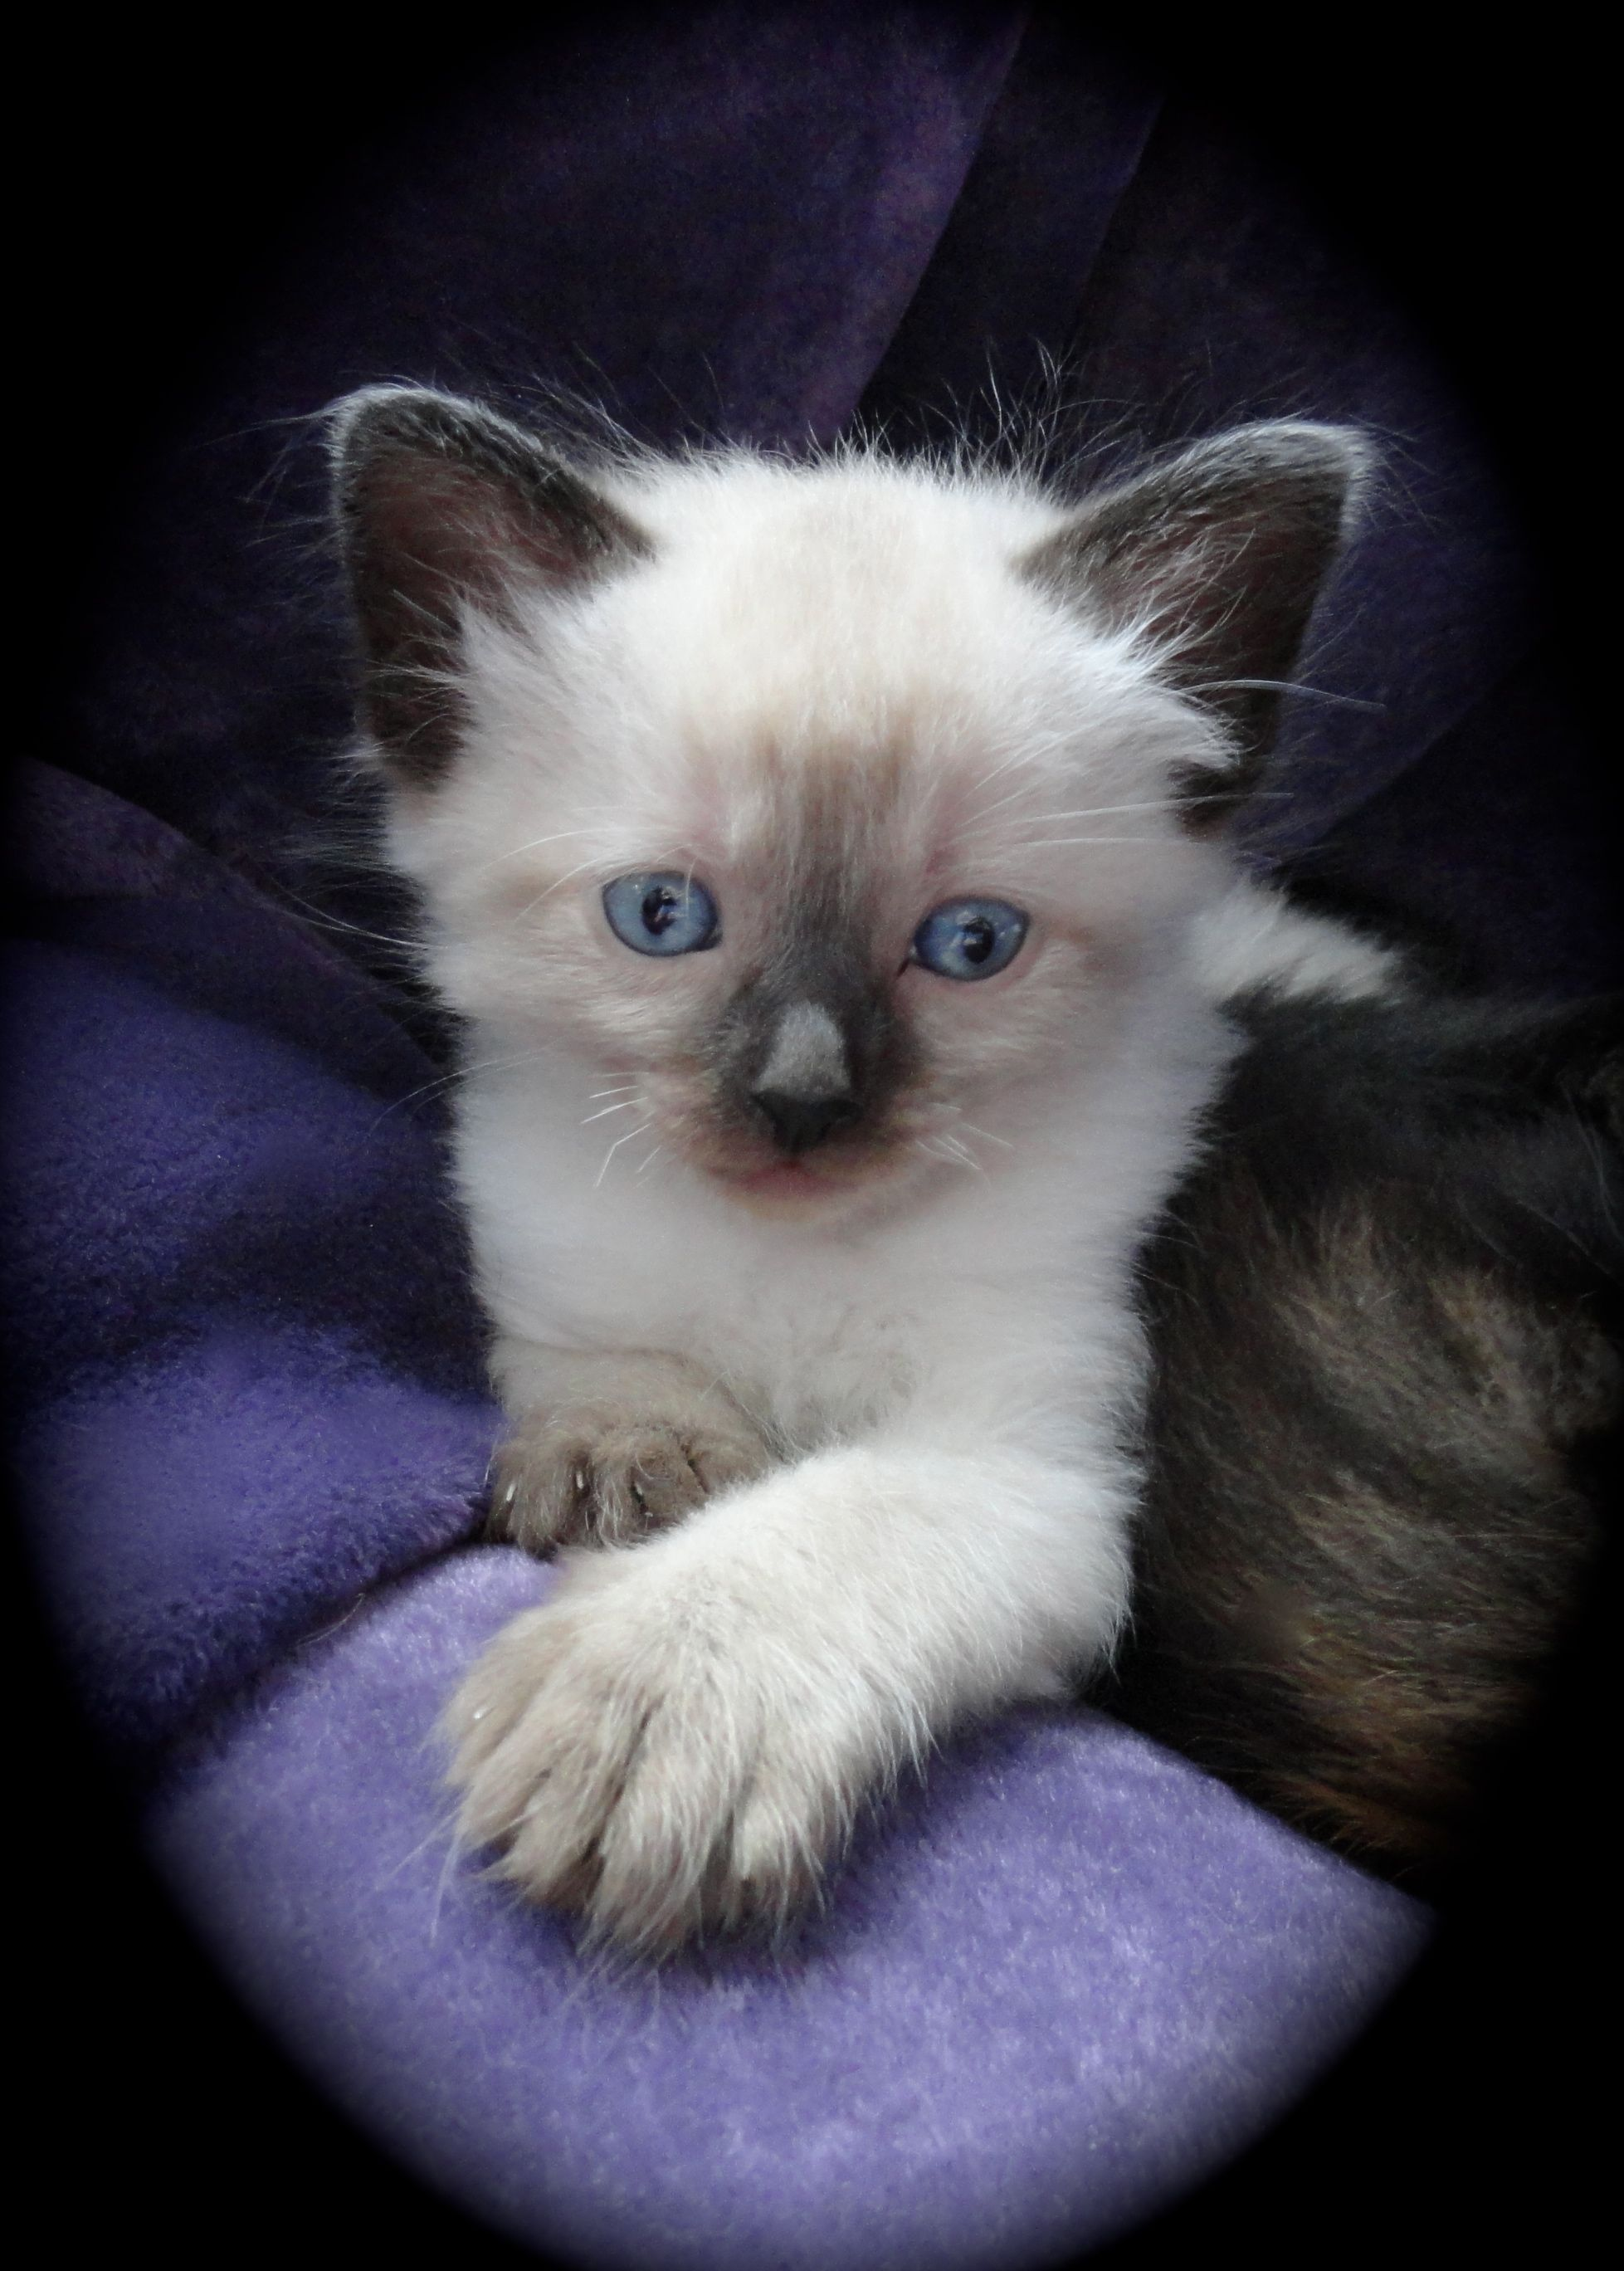 Katy's Kitten at 5 weeks old Ragdoll X Kittens ♡ Cats